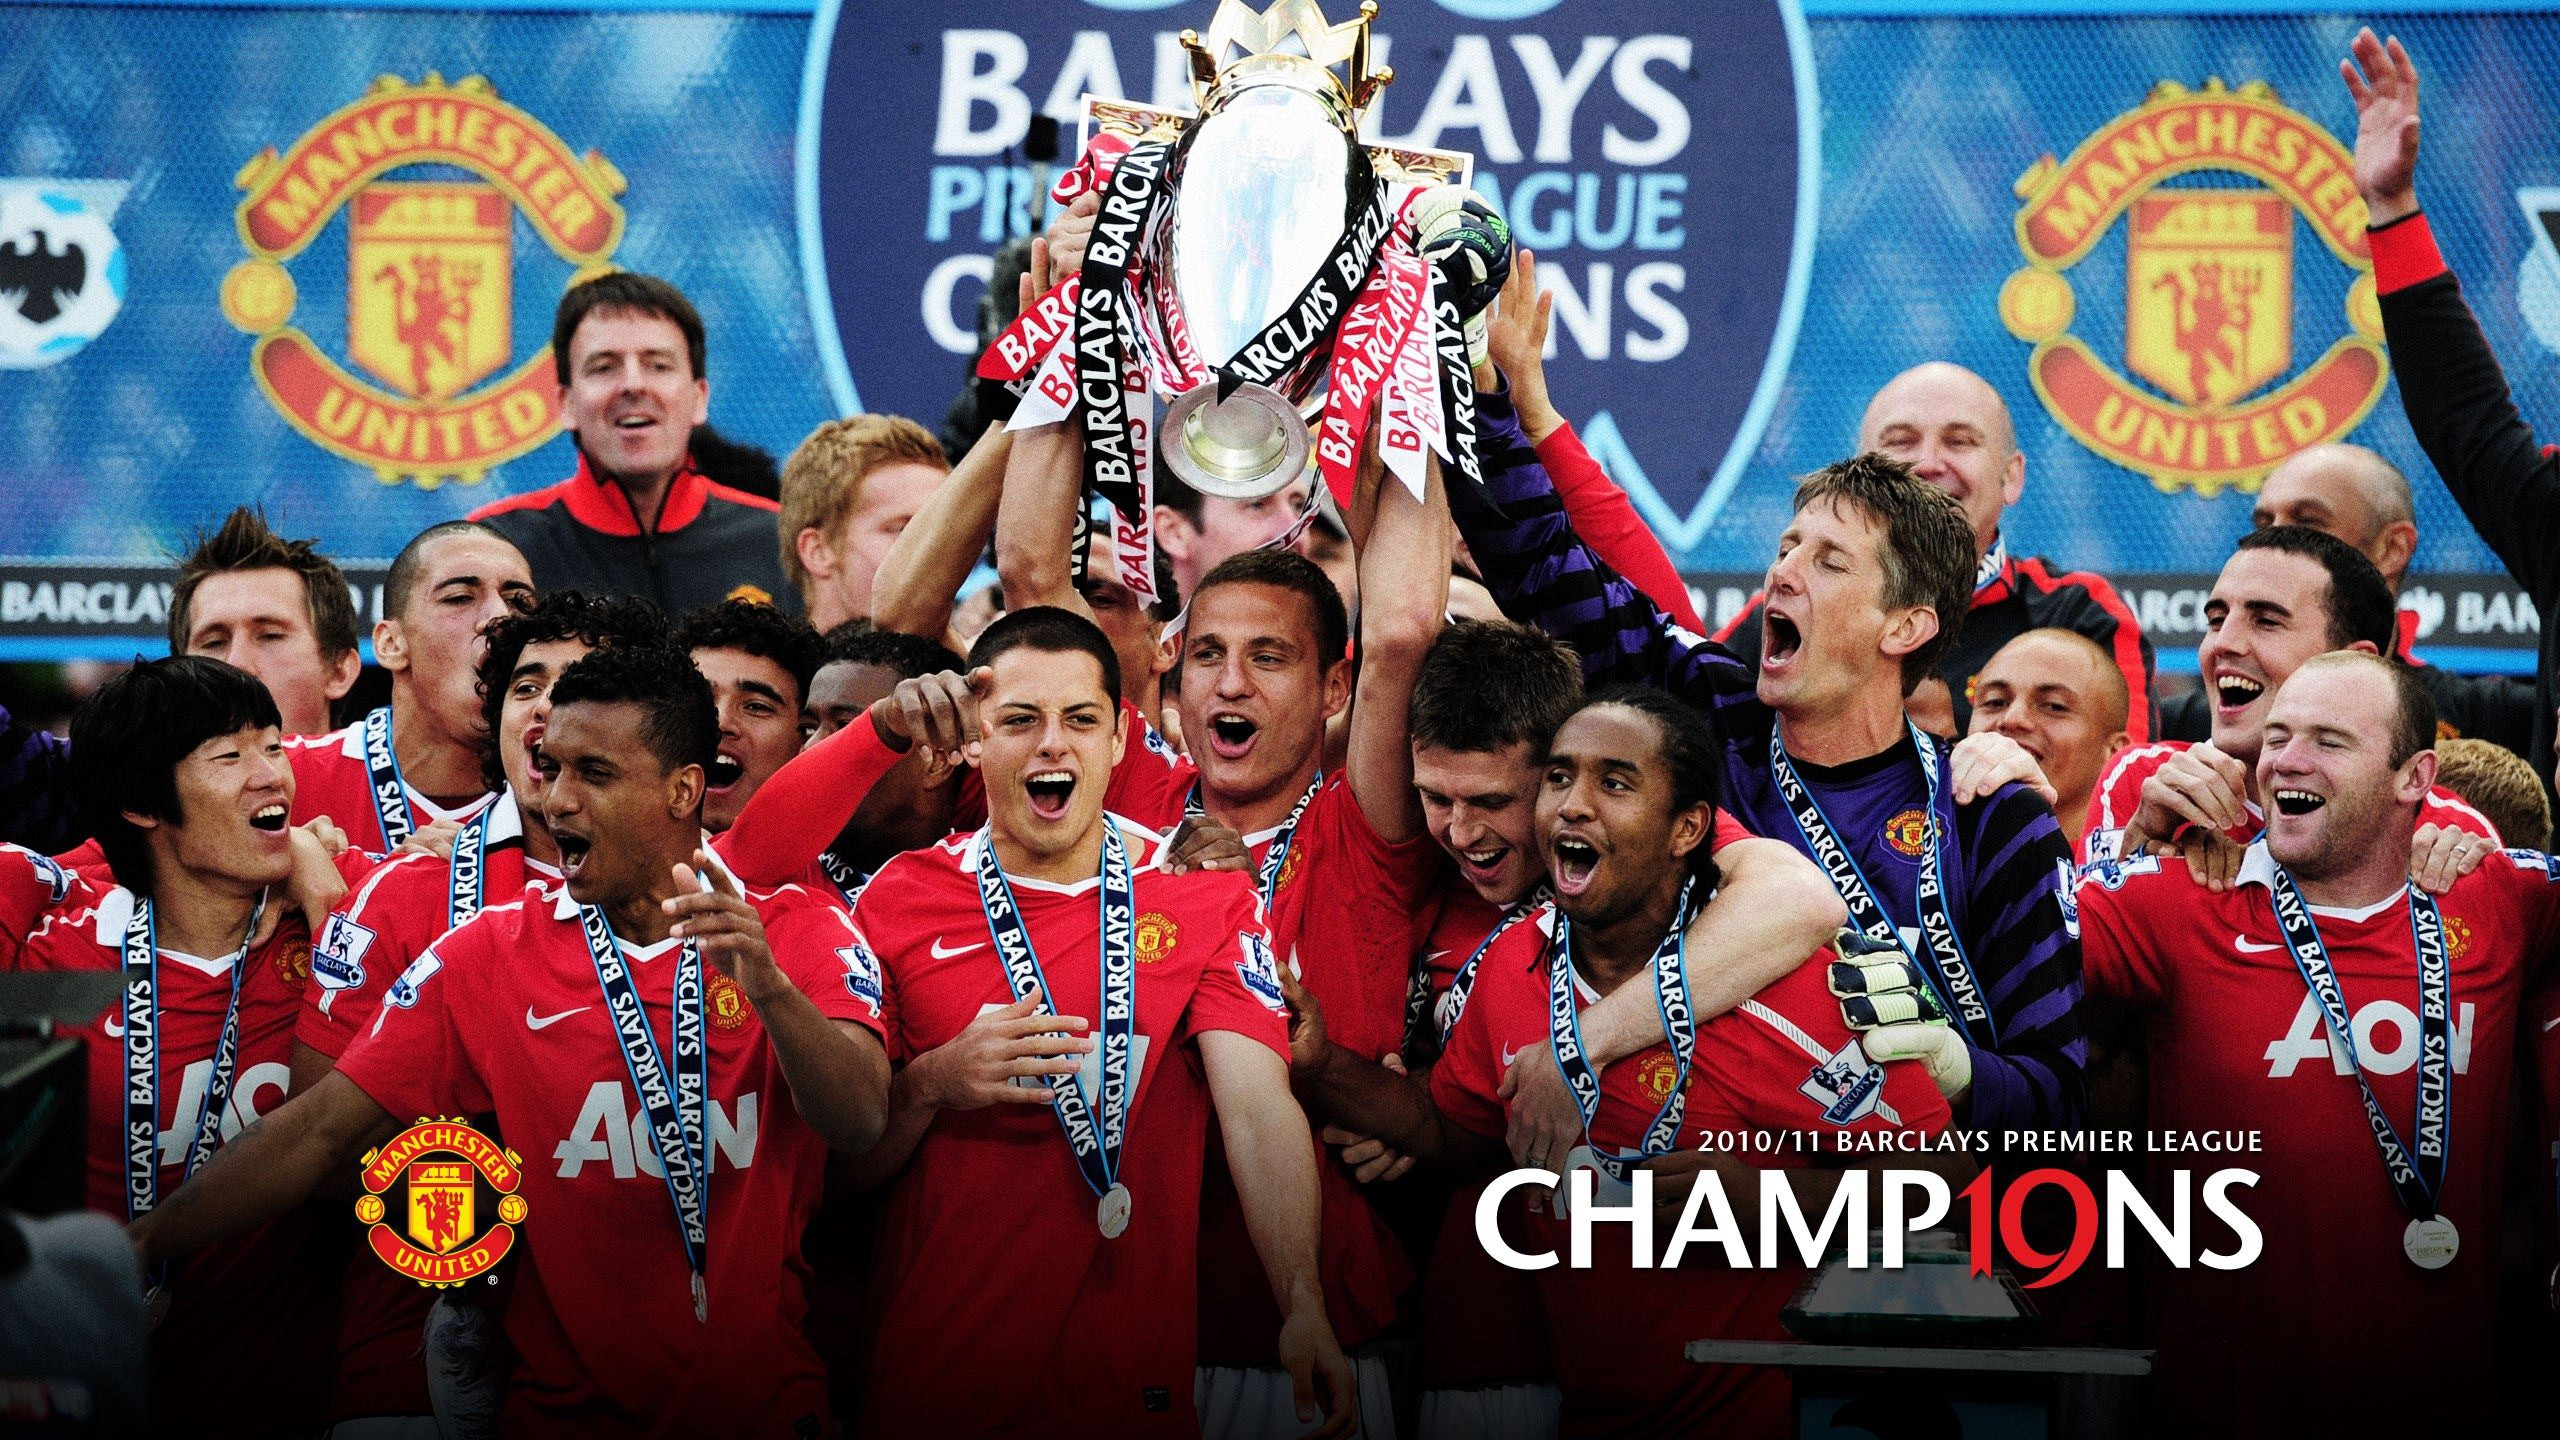 Manchester United Champ19ns Hd Wallpaper